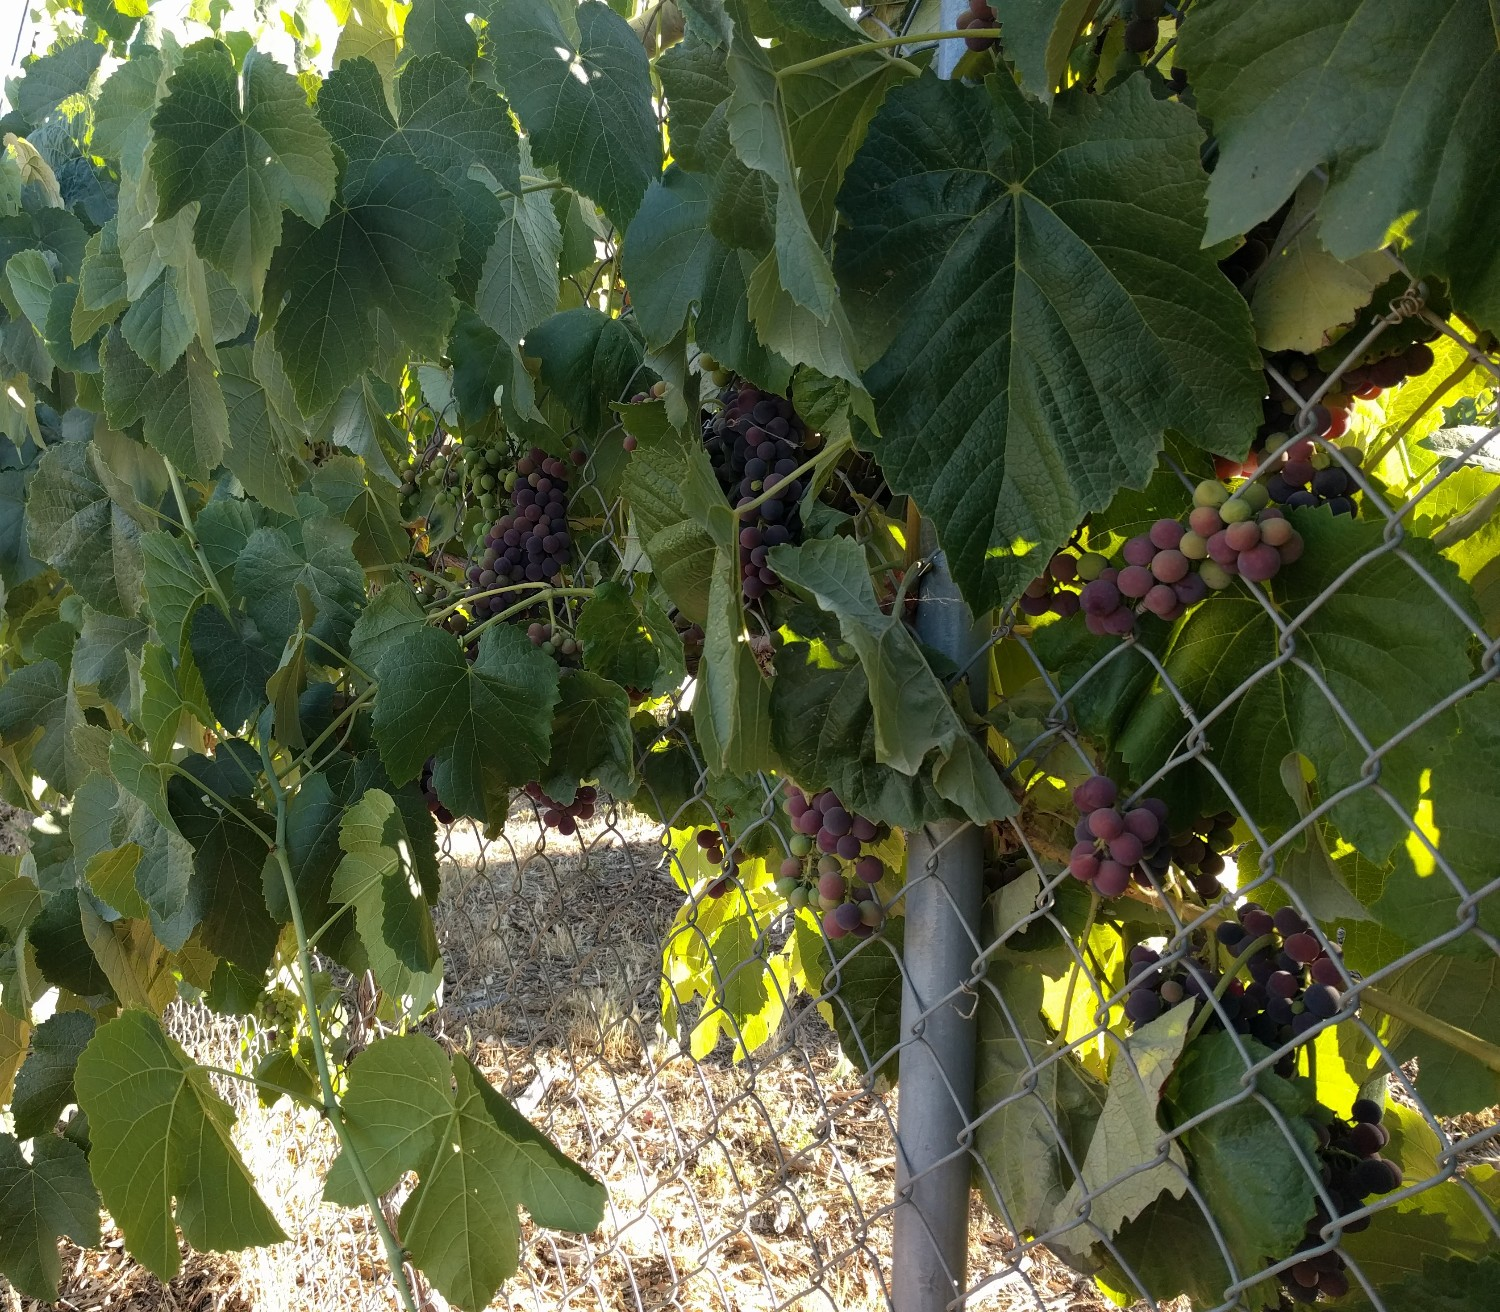 How To Grow Grapes On A Chain Link Fence